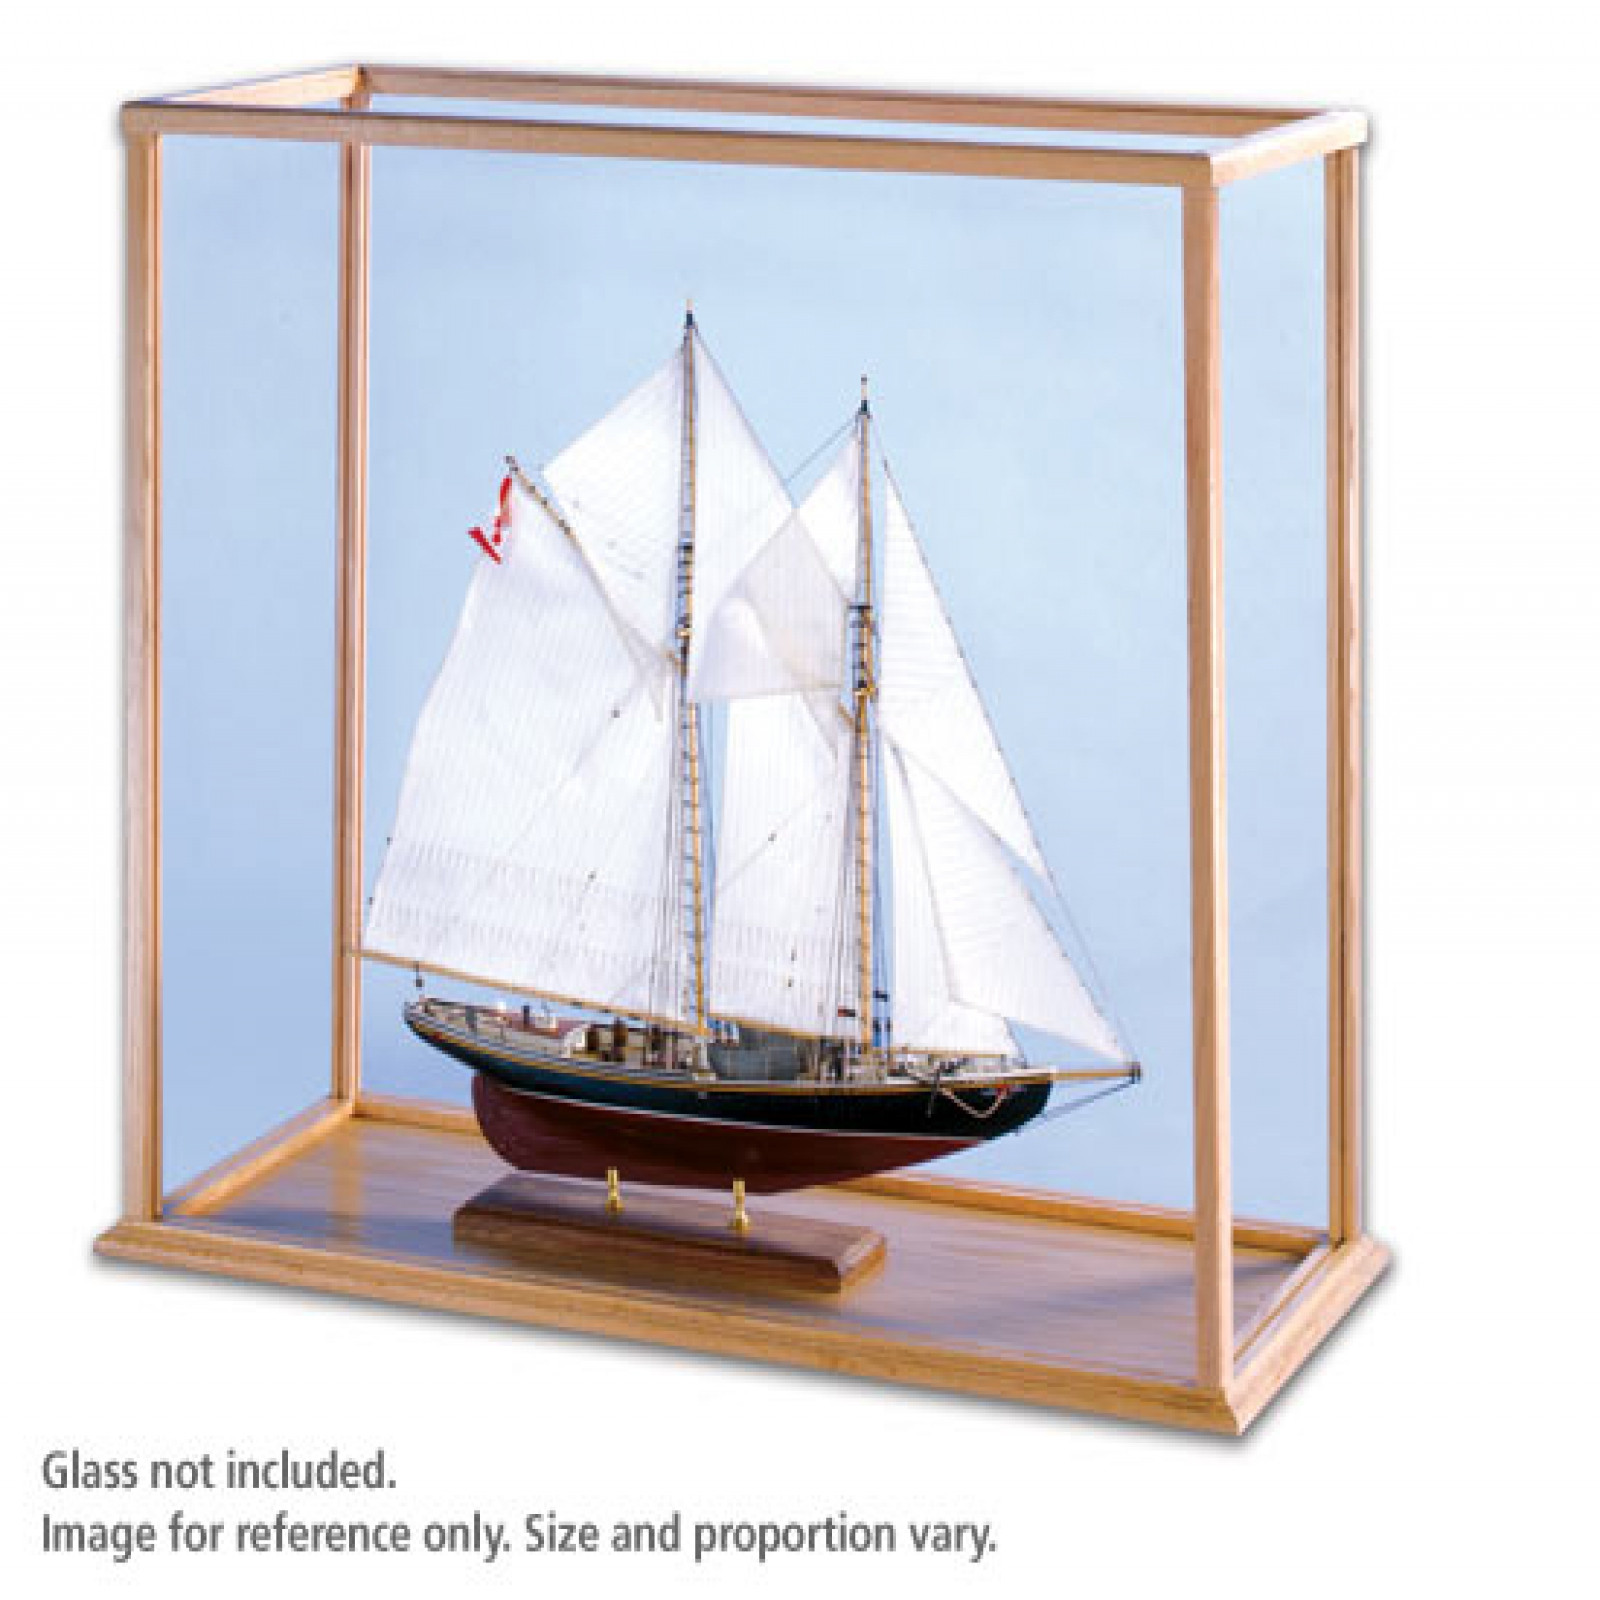 OAK SHIP MODEL CASE   L28 X W8 X H22    KIT